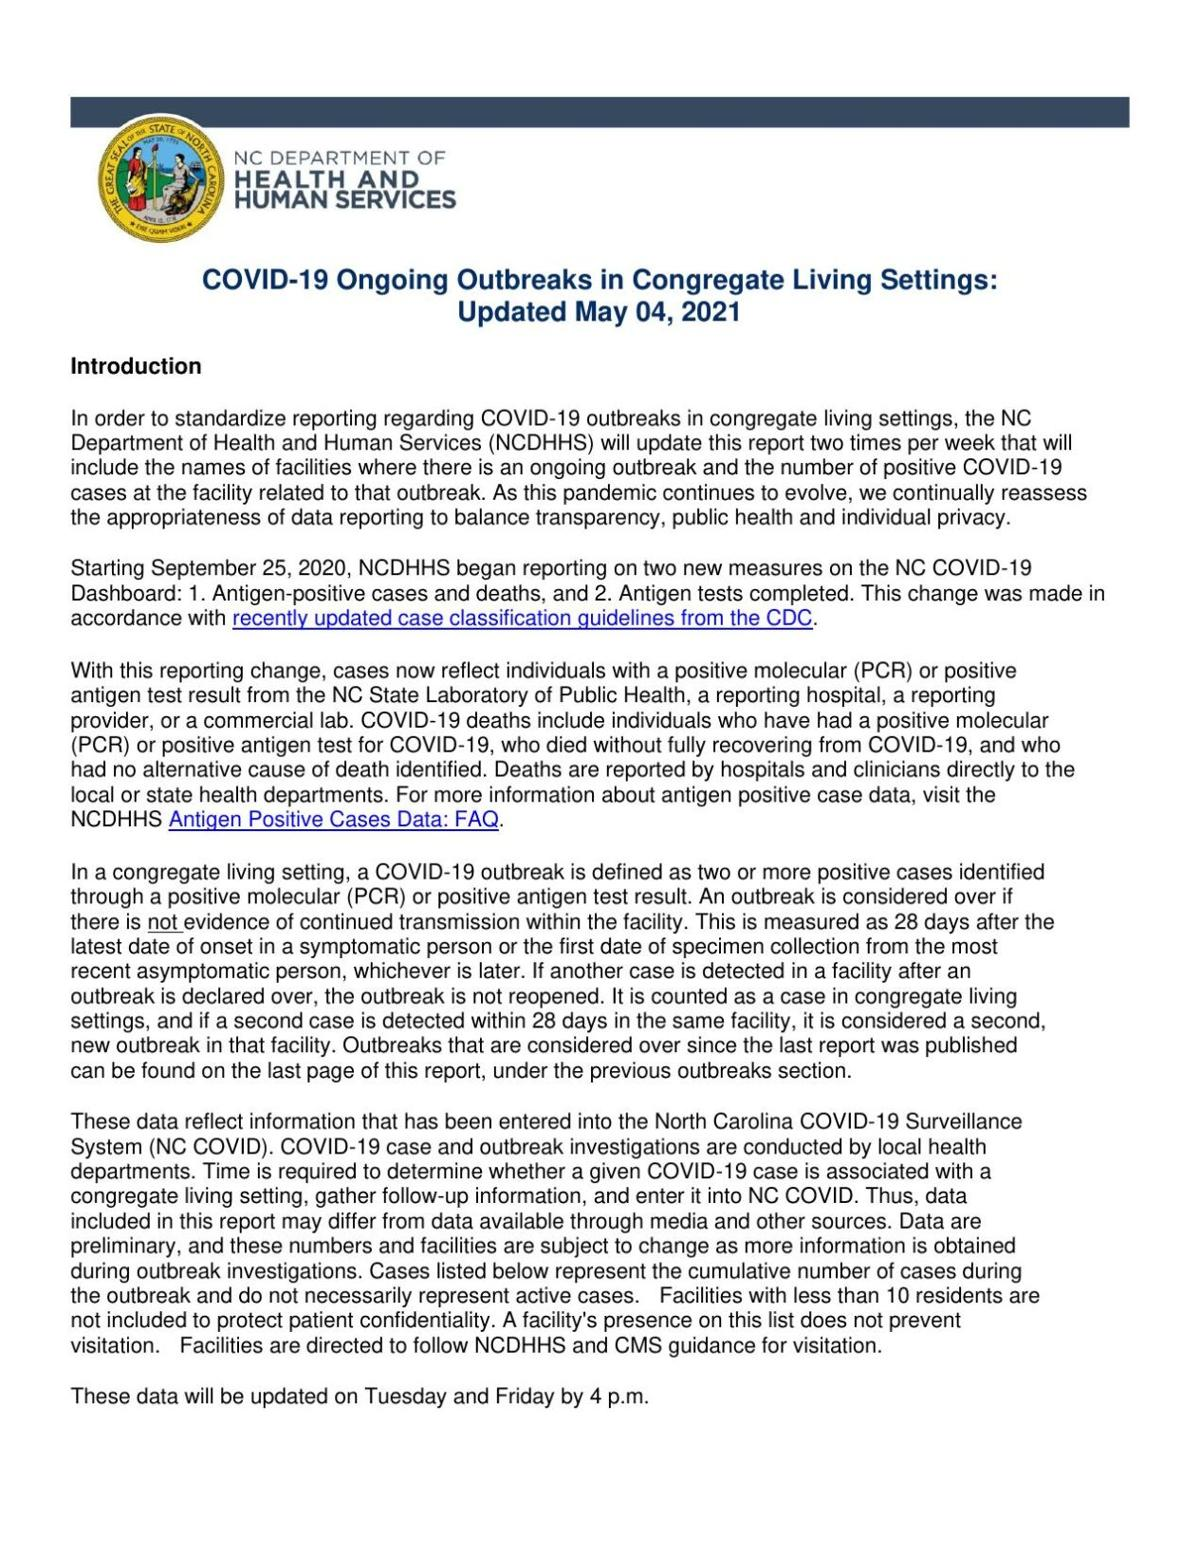 May 4, 2021, COVID-19 outbreaks report